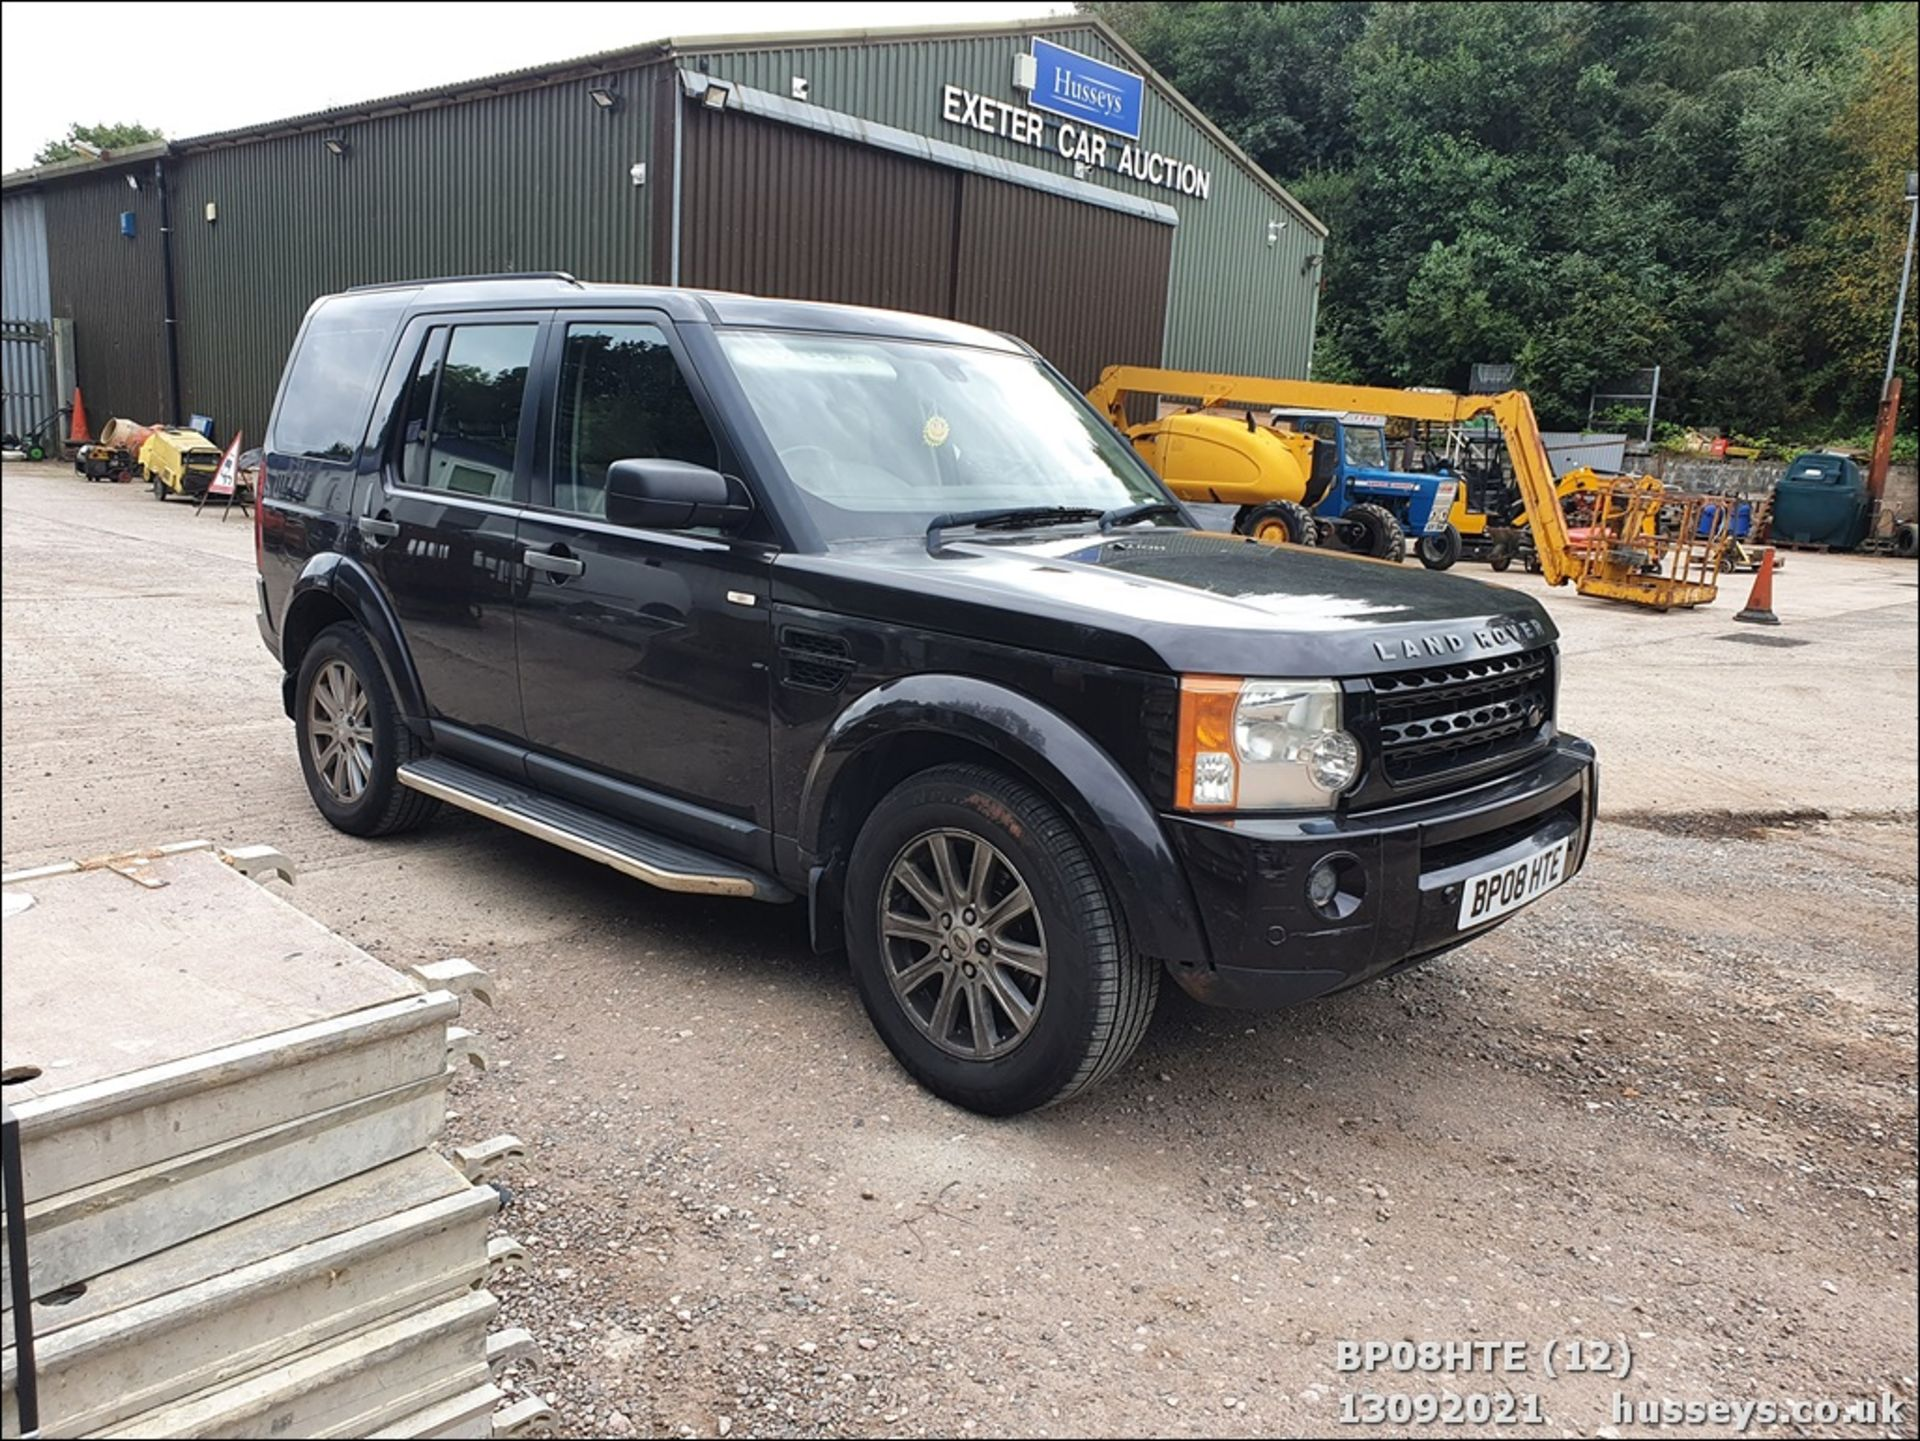 08/08 LAND ROVER DISCOVERY TDV6 SE A - 2720cc 5dr Estate (Brown, 190k) - Image 12 of 18